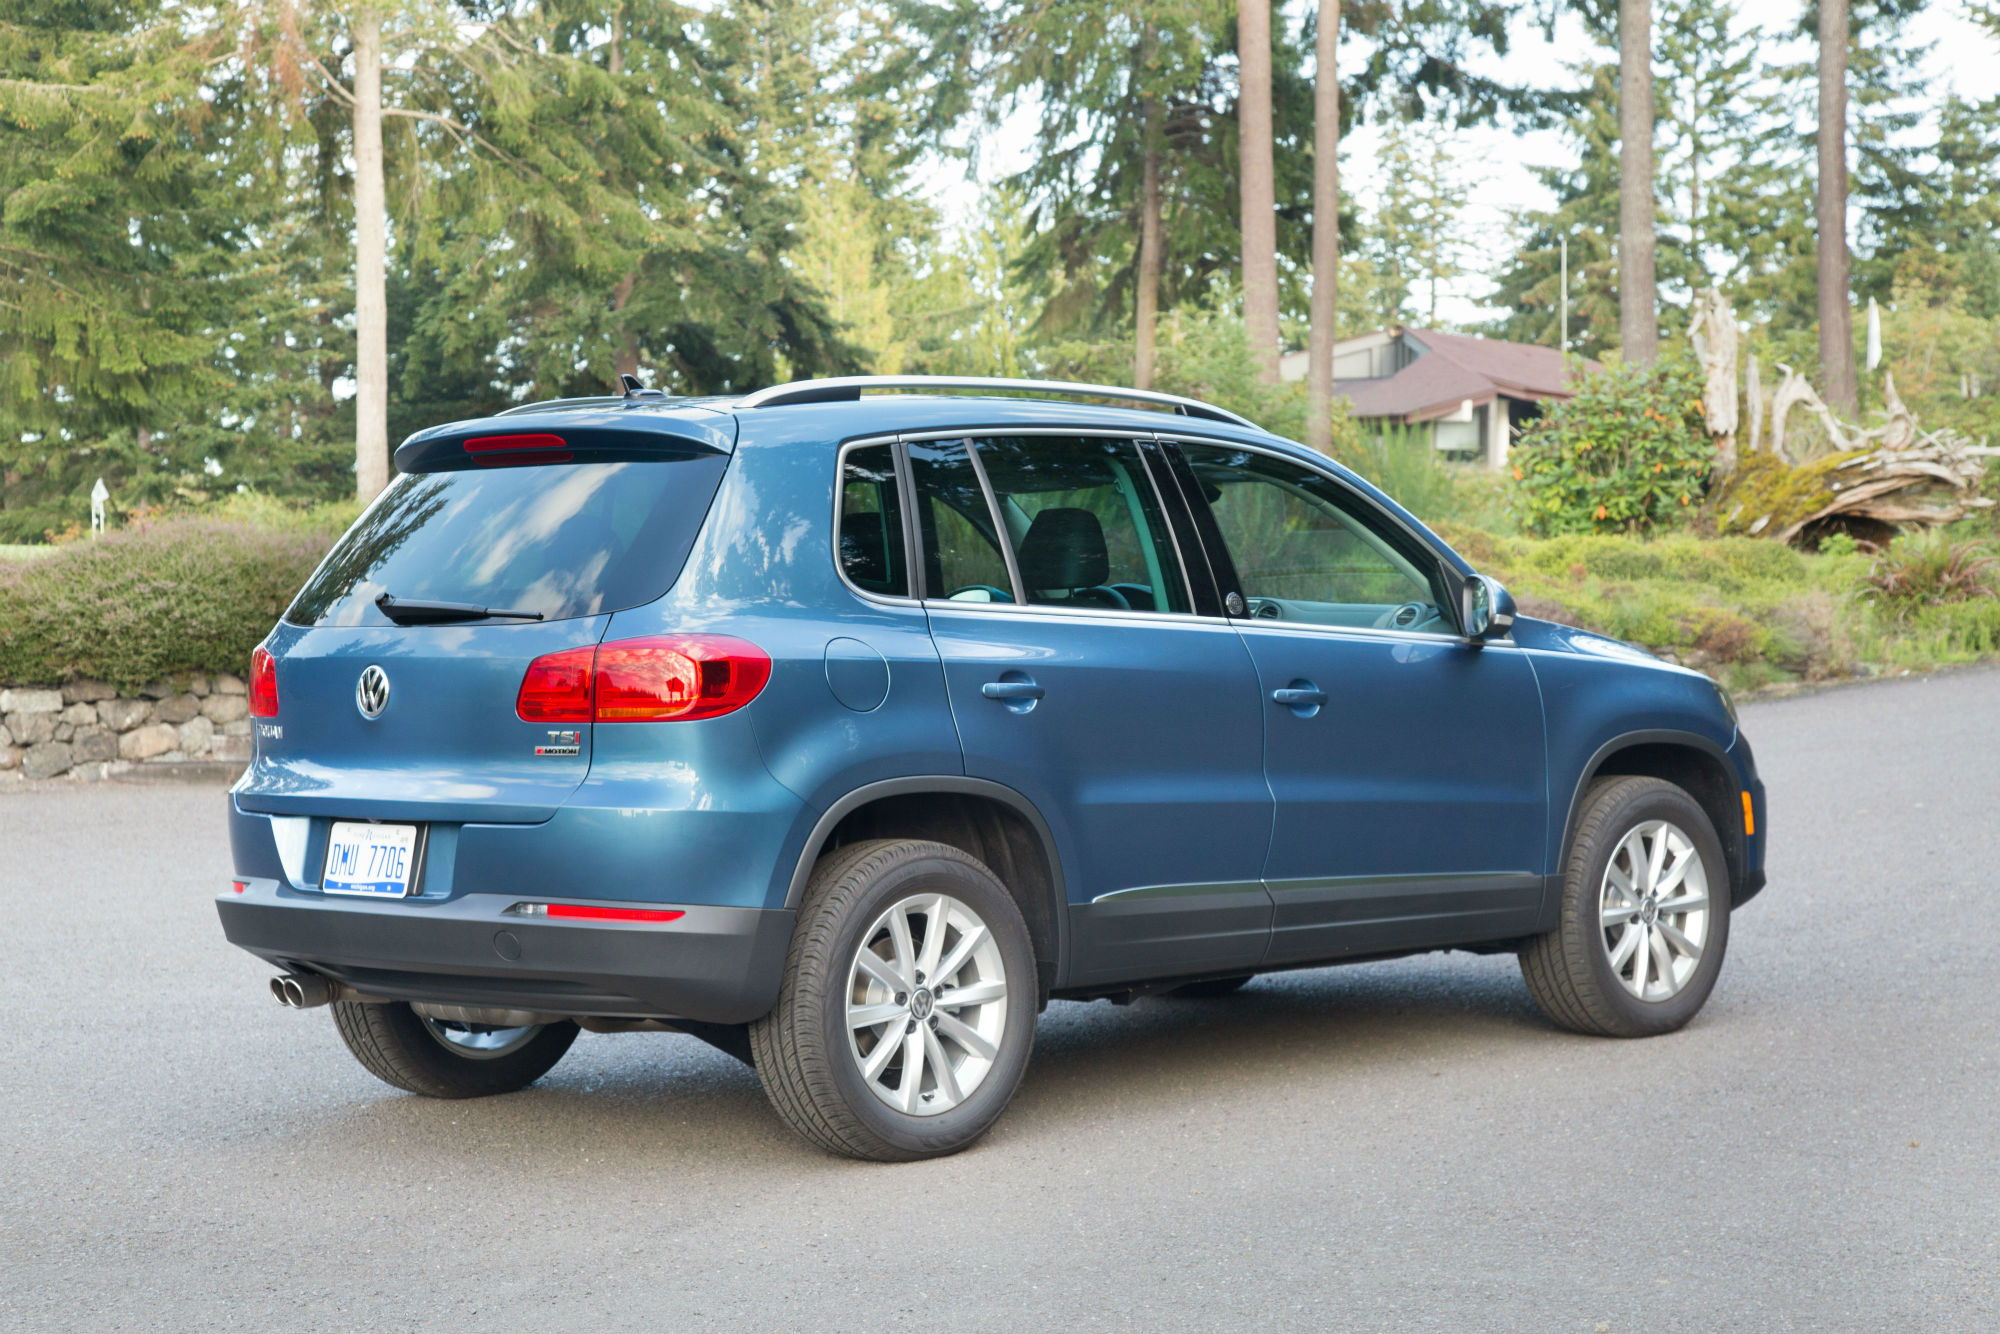 2018 Volkswagen Tiguan Limited Deals, Prices, Incentives & Leases, Overview - CarsDirect